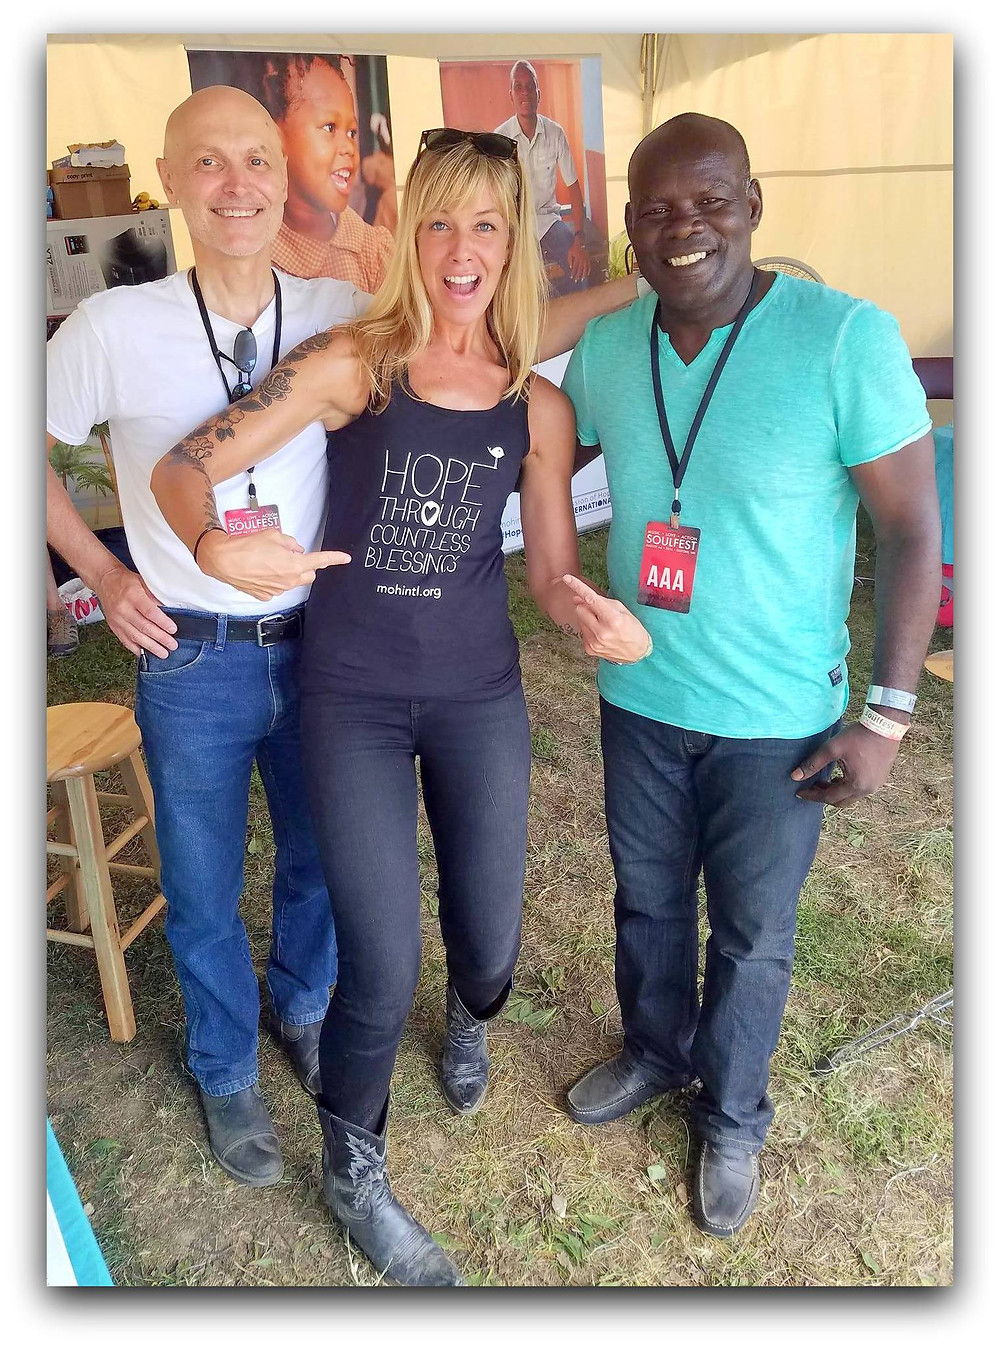 Co-founder of Soulfest, Shawn Alexander, and singer Courtney Reid join Lex in the MOHI tent.